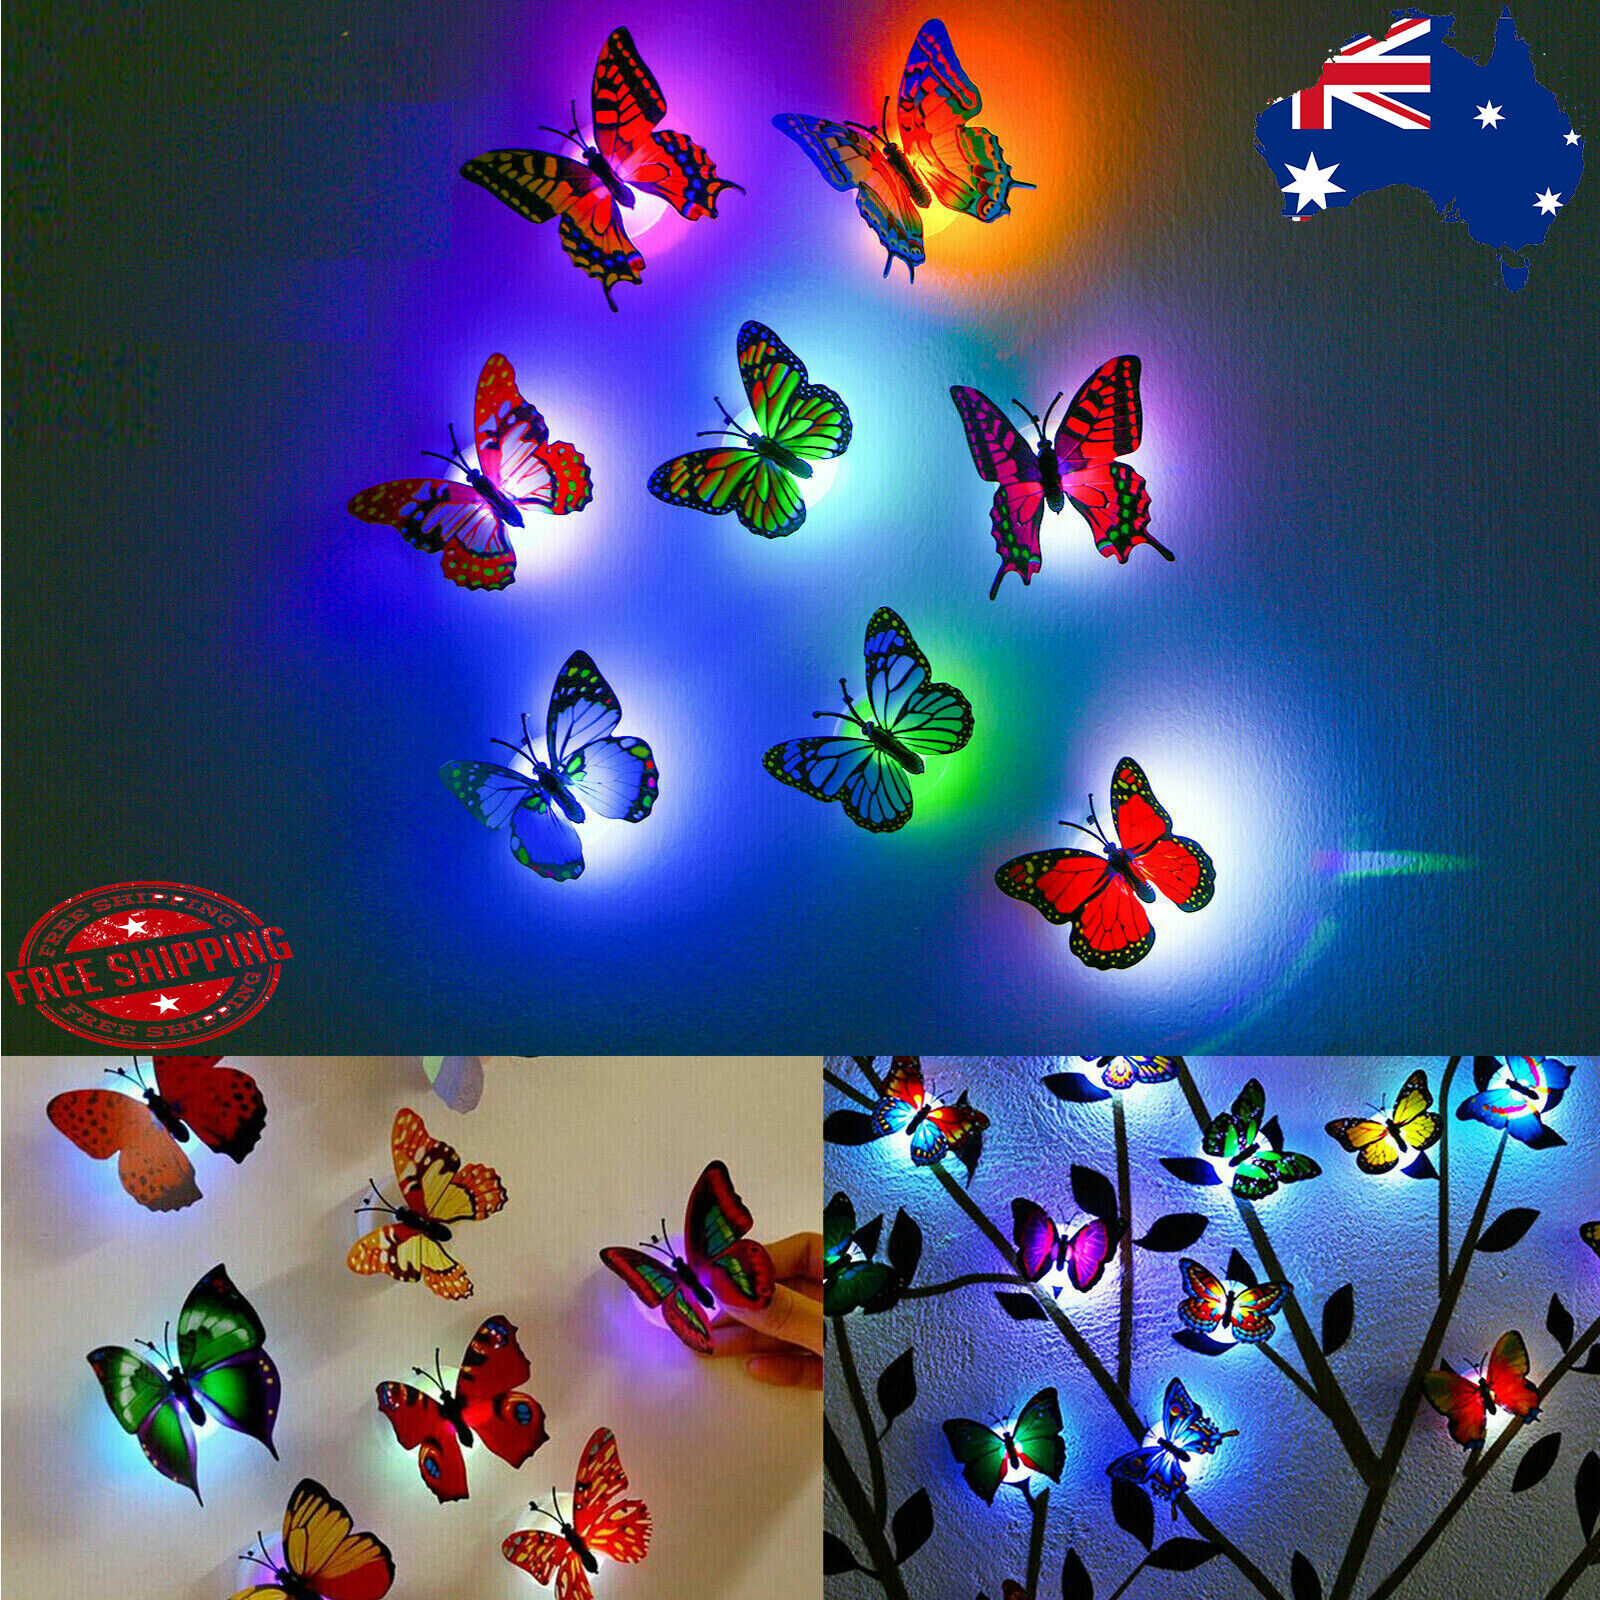 Home Decoration - 3DWall Sticker LED Butterfly Decoration Night Light Indoor Home Wall Decor Party